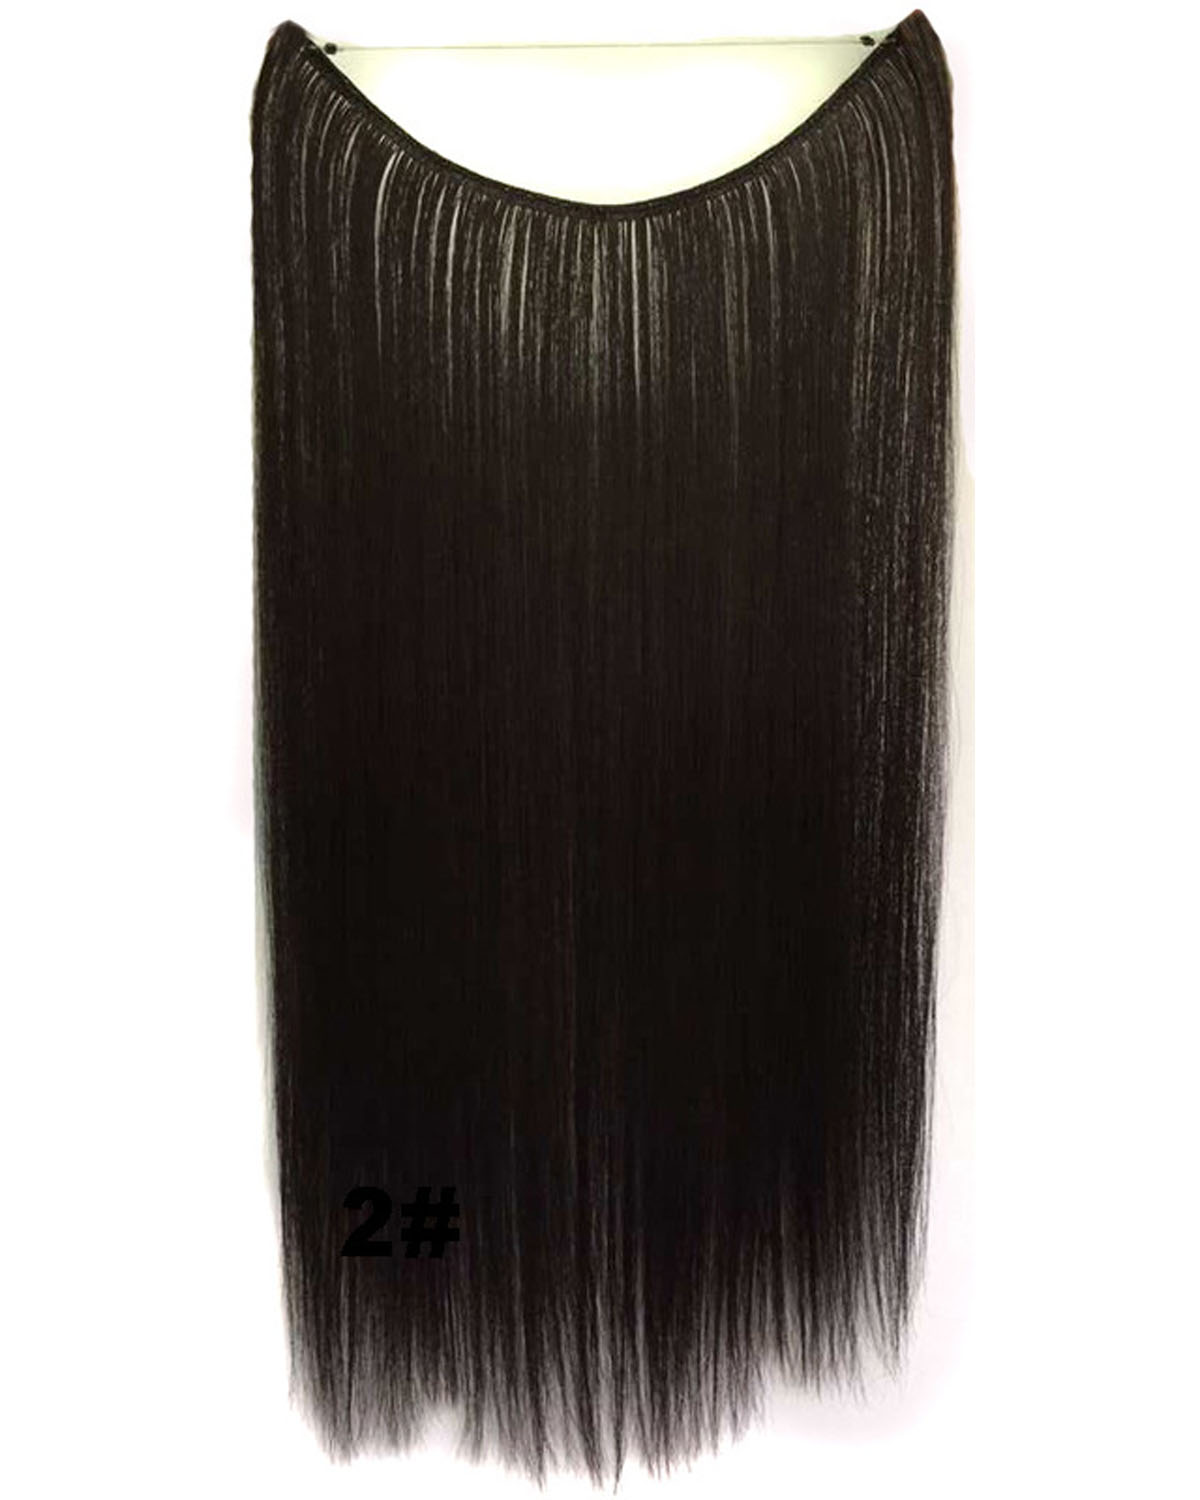 22 Inch Lady Straight long One Piece Miracle Wire Flip in Synthetic Hair Extension 2#